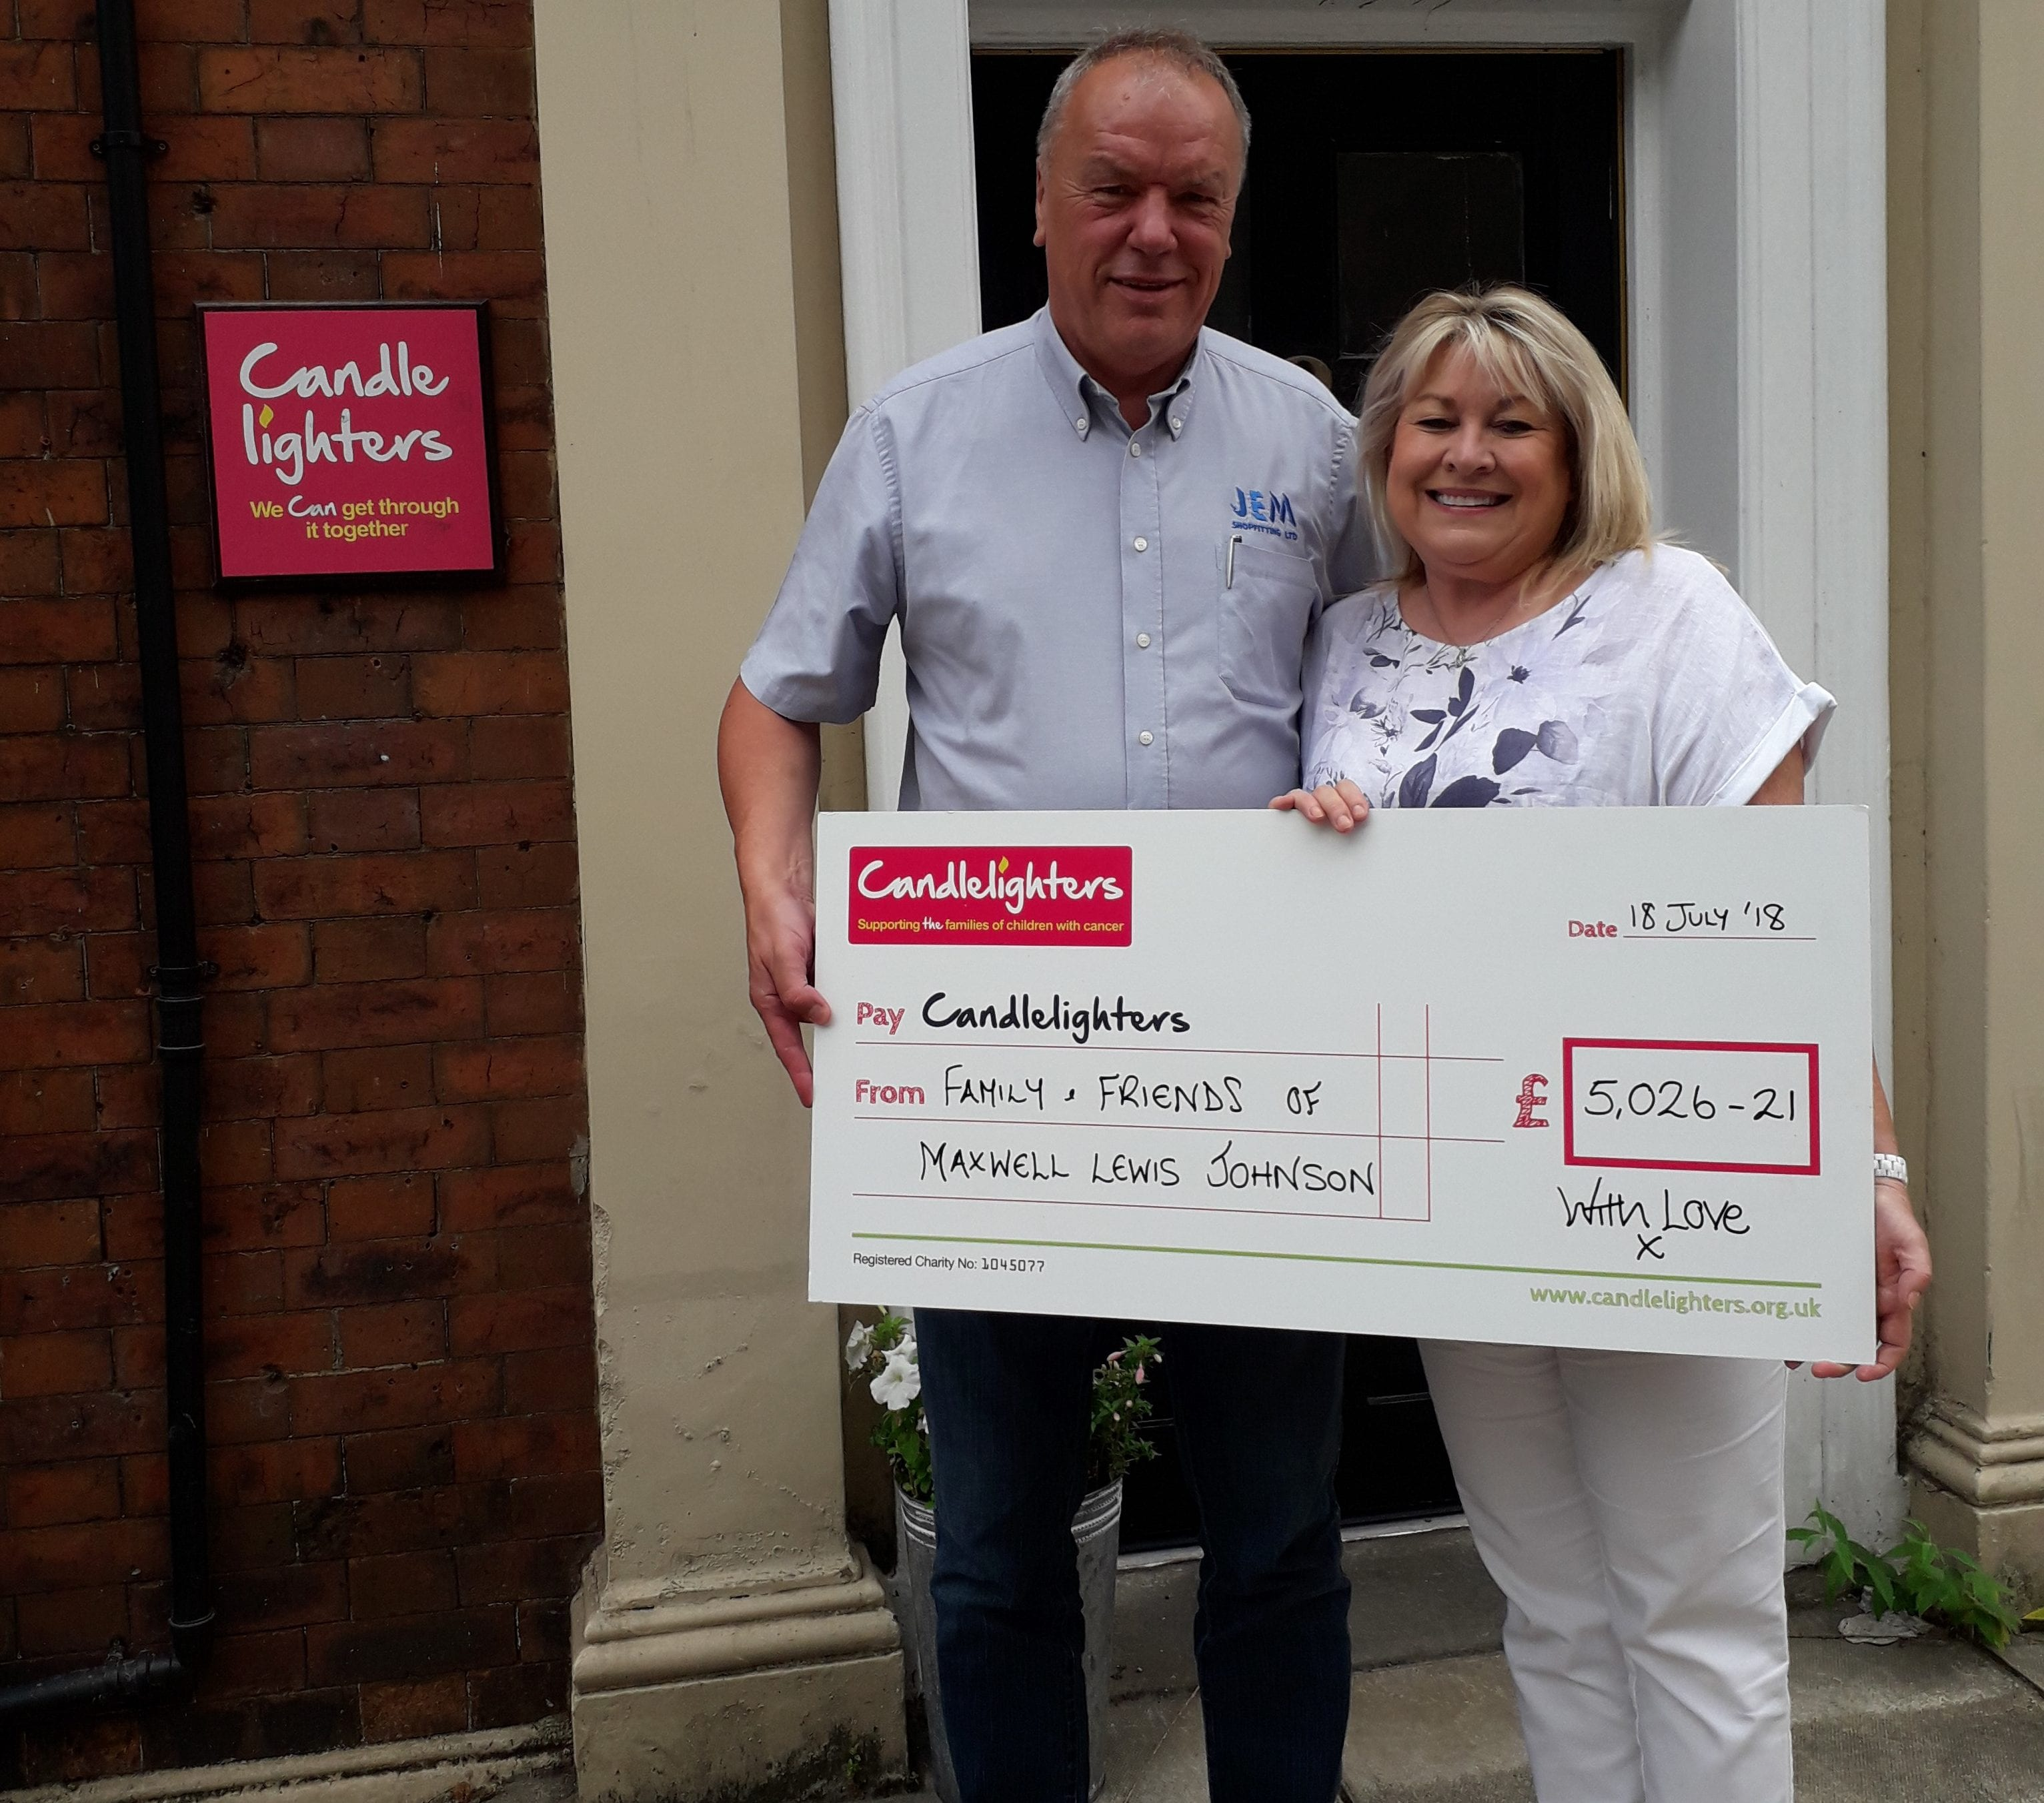 Julie and Lee host concert in memory of their son Maxwell, raising a staggering £5000.